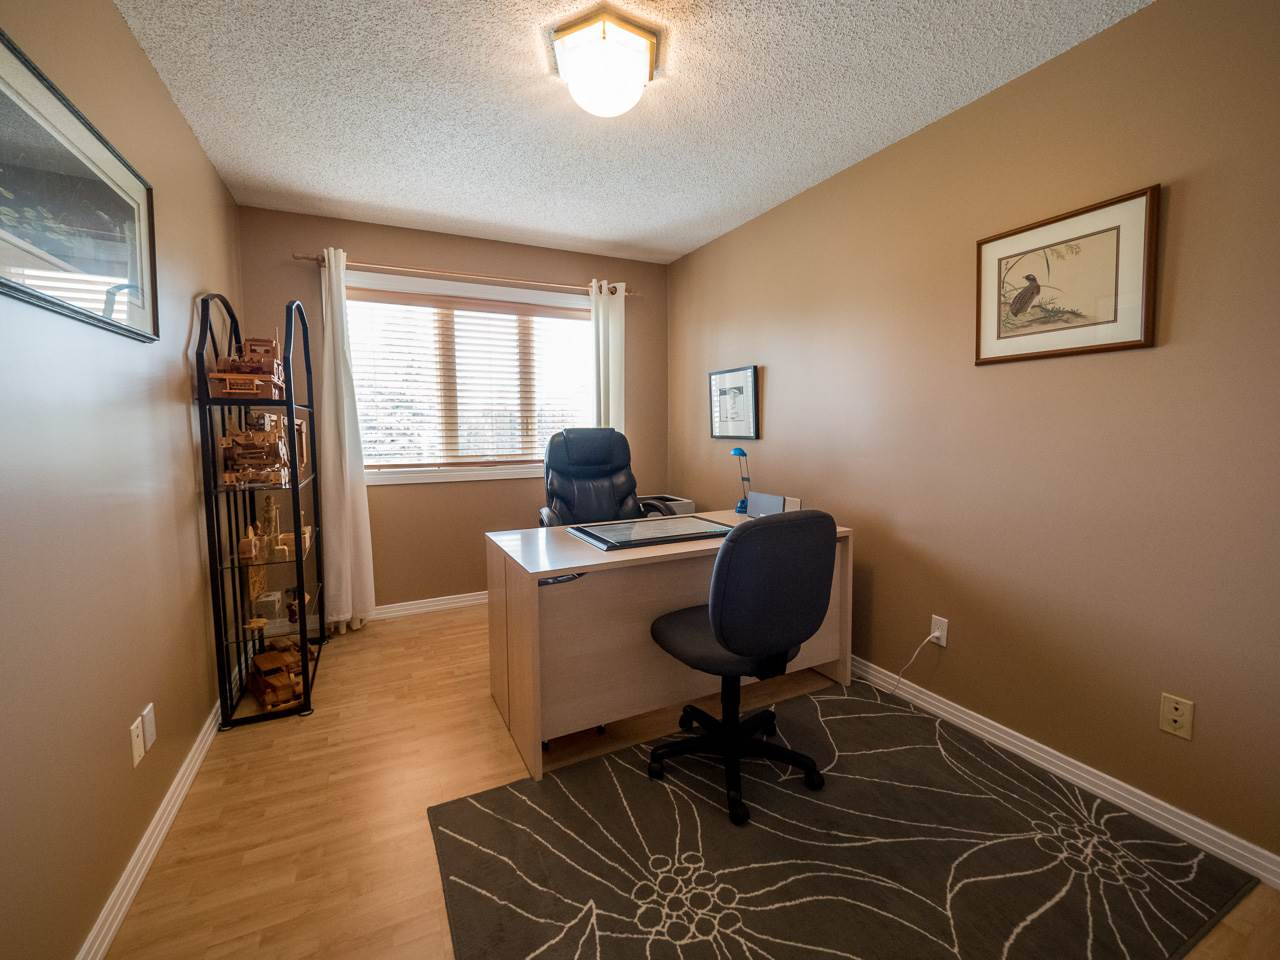 Photo 17: 205 WEBER Place in Edmonton: Zone 20 House for sale : MLS® # E4077601